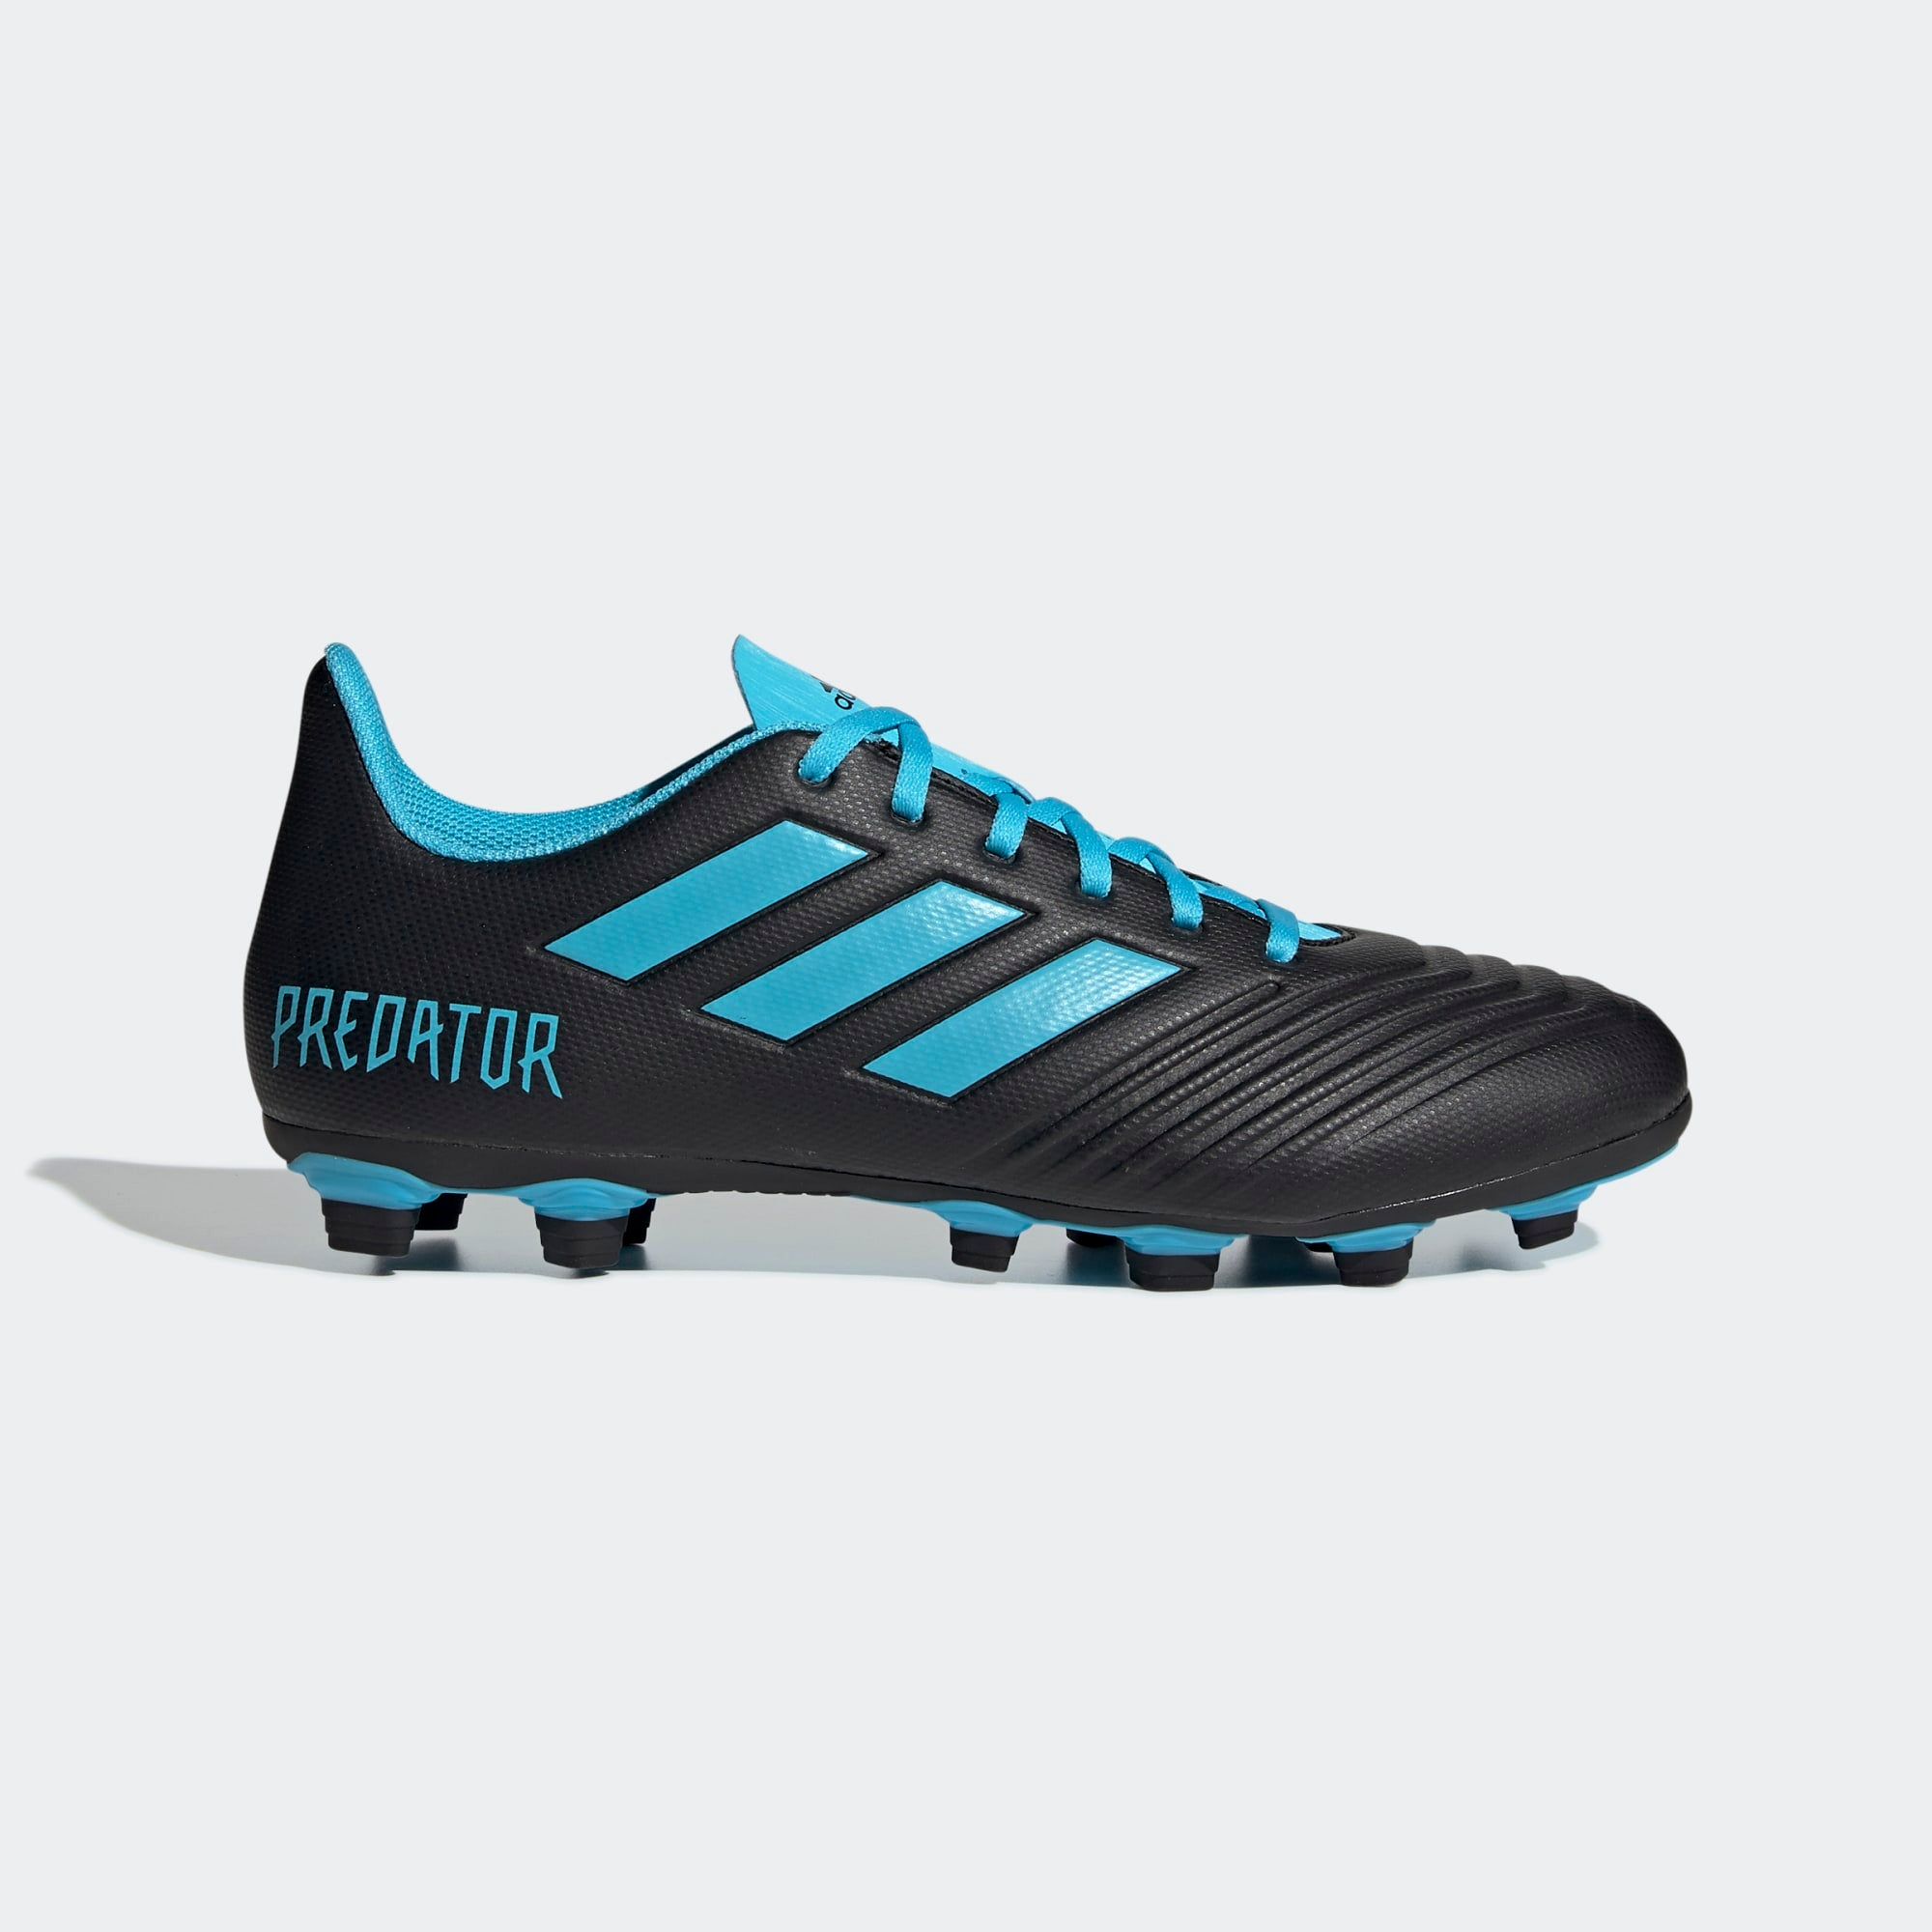 PREDATOR 20.4 FLEXIBLE GROUND FOOTBALL BOOT